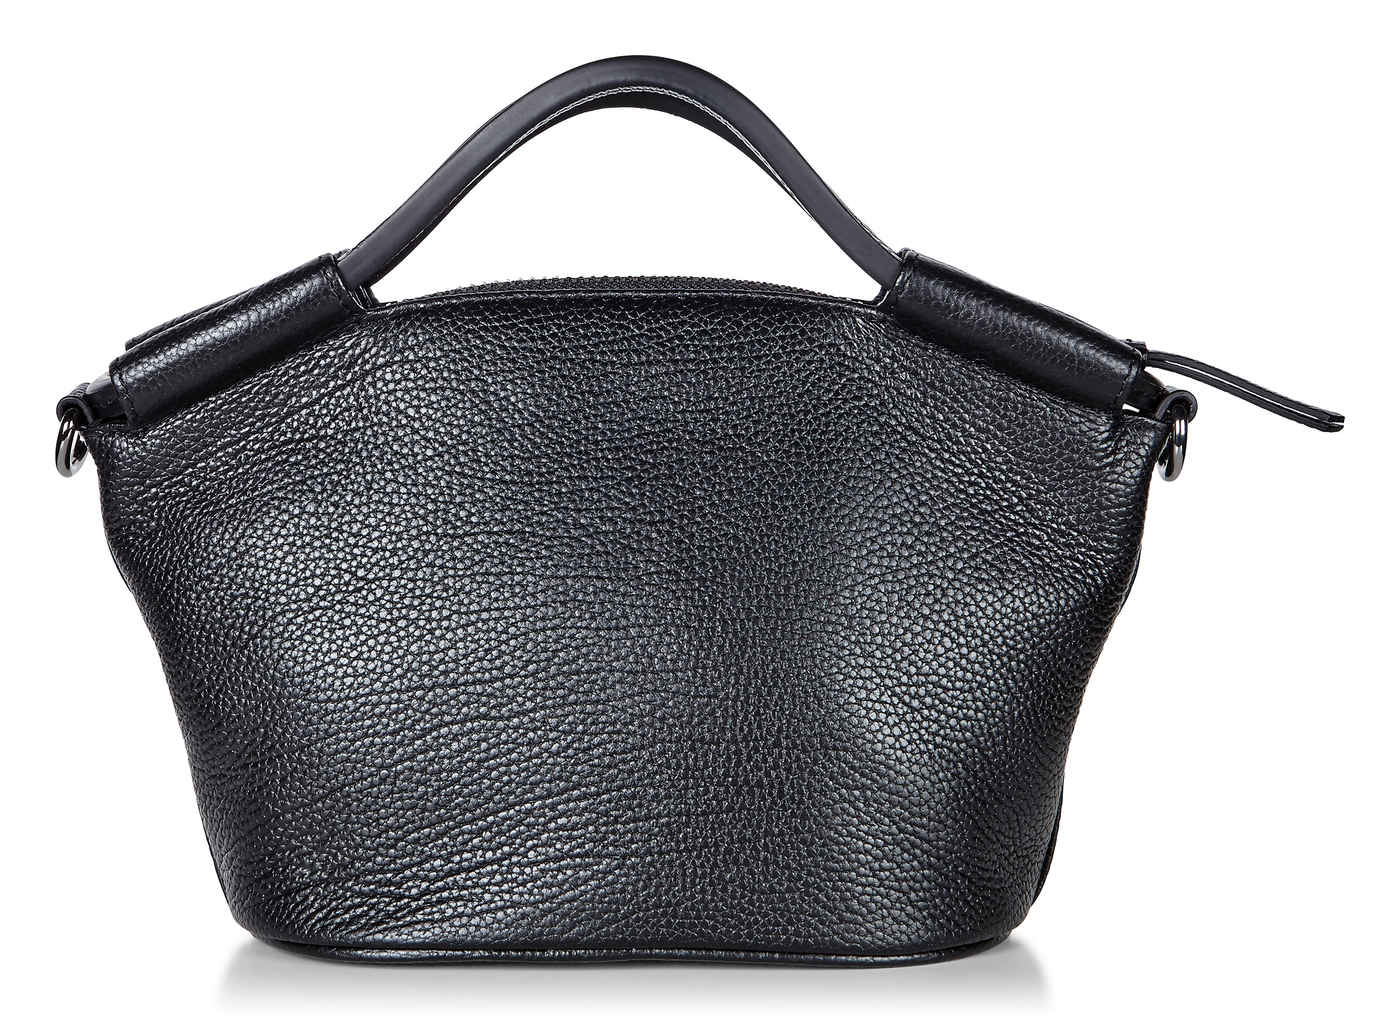 7807b07a89 ECCO SP 2 Small Doctor's Bag | Chic Bags | ECCO® Shoes